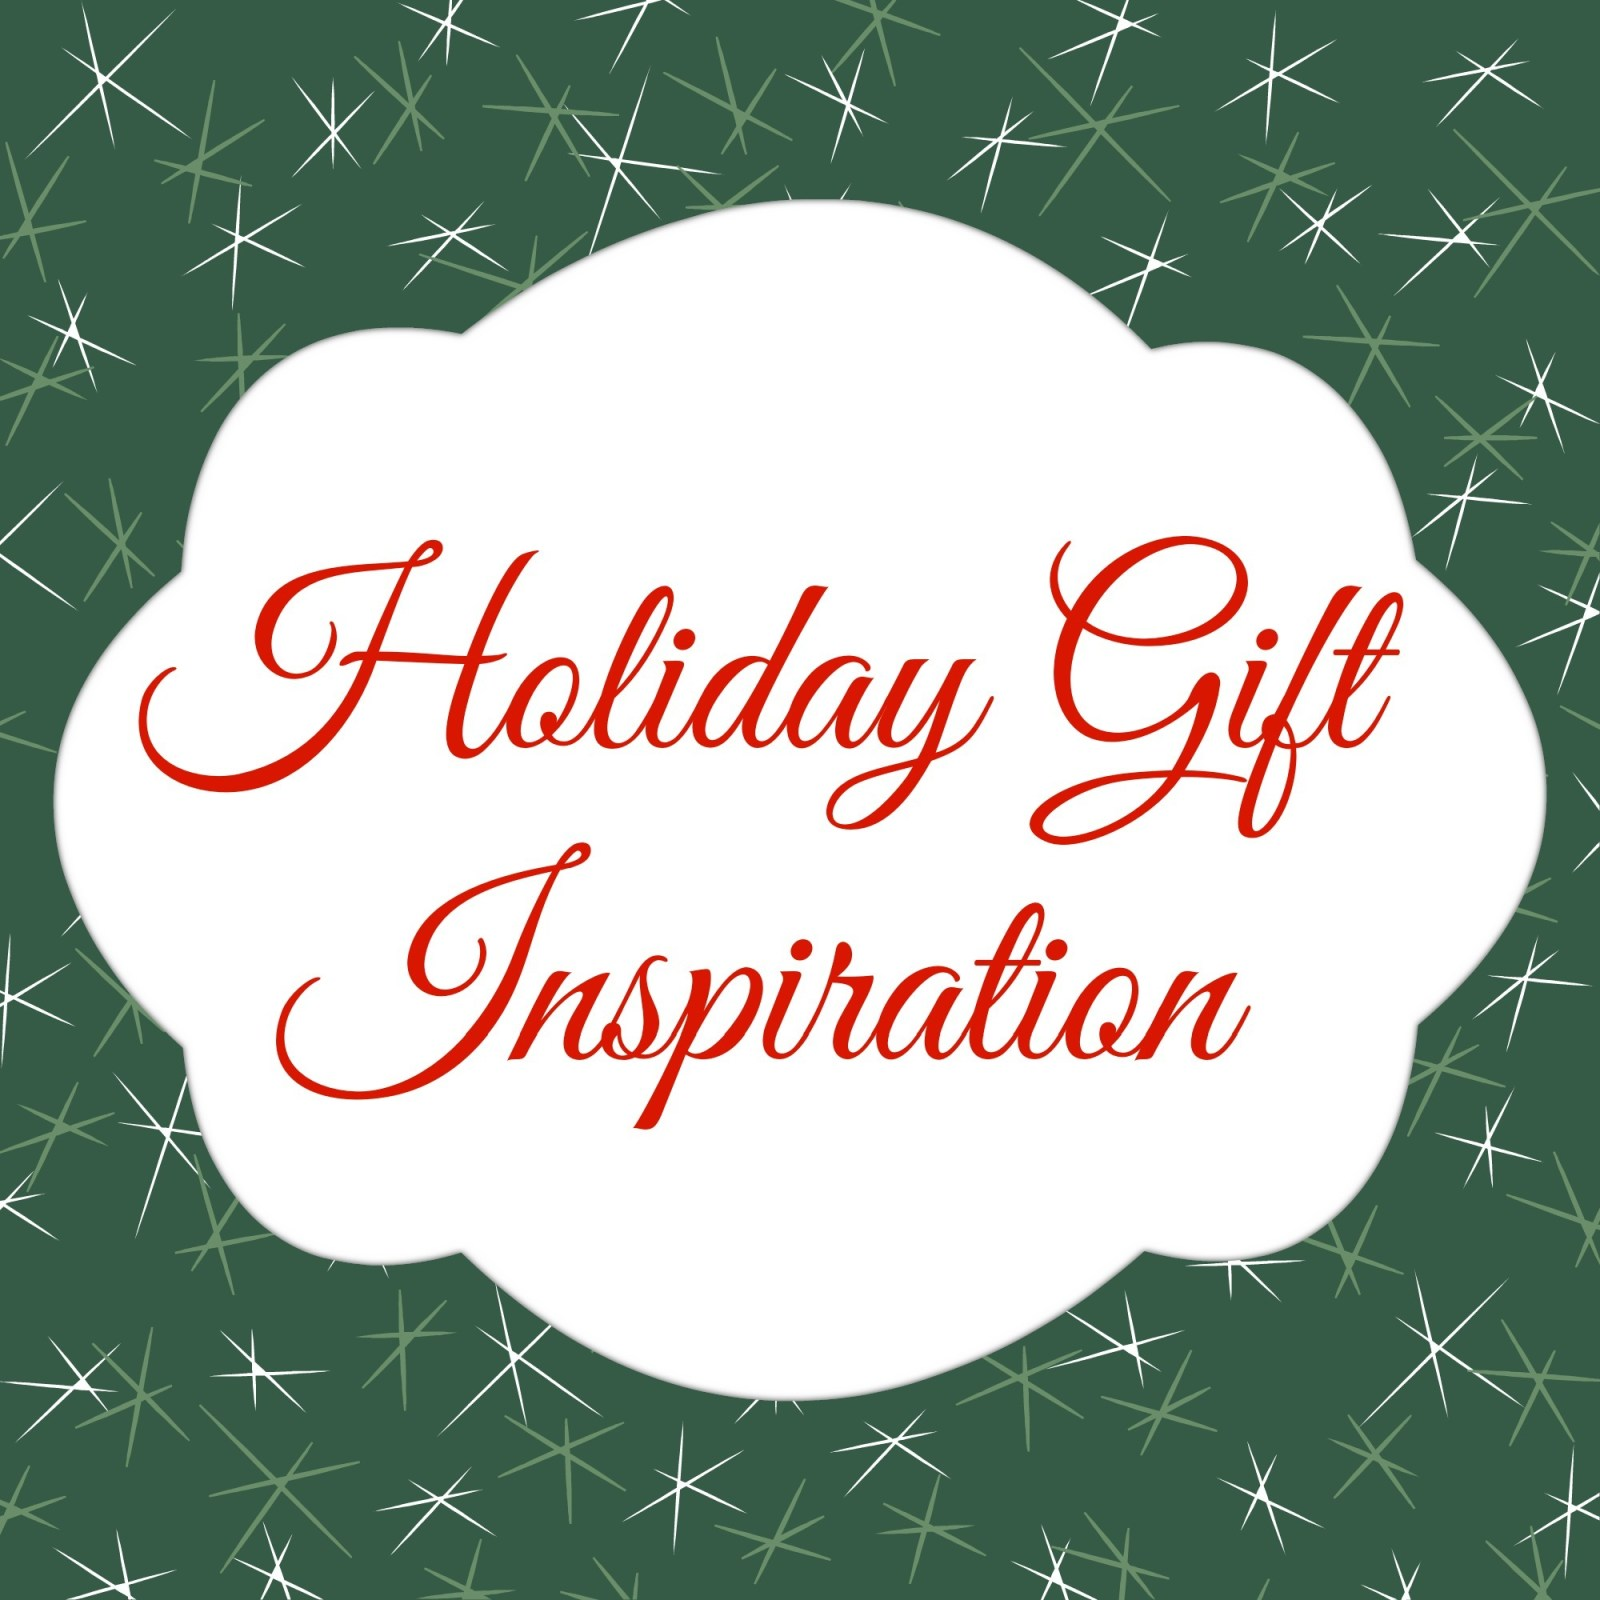 Holiday Gift Inspiration: Young Family Edition